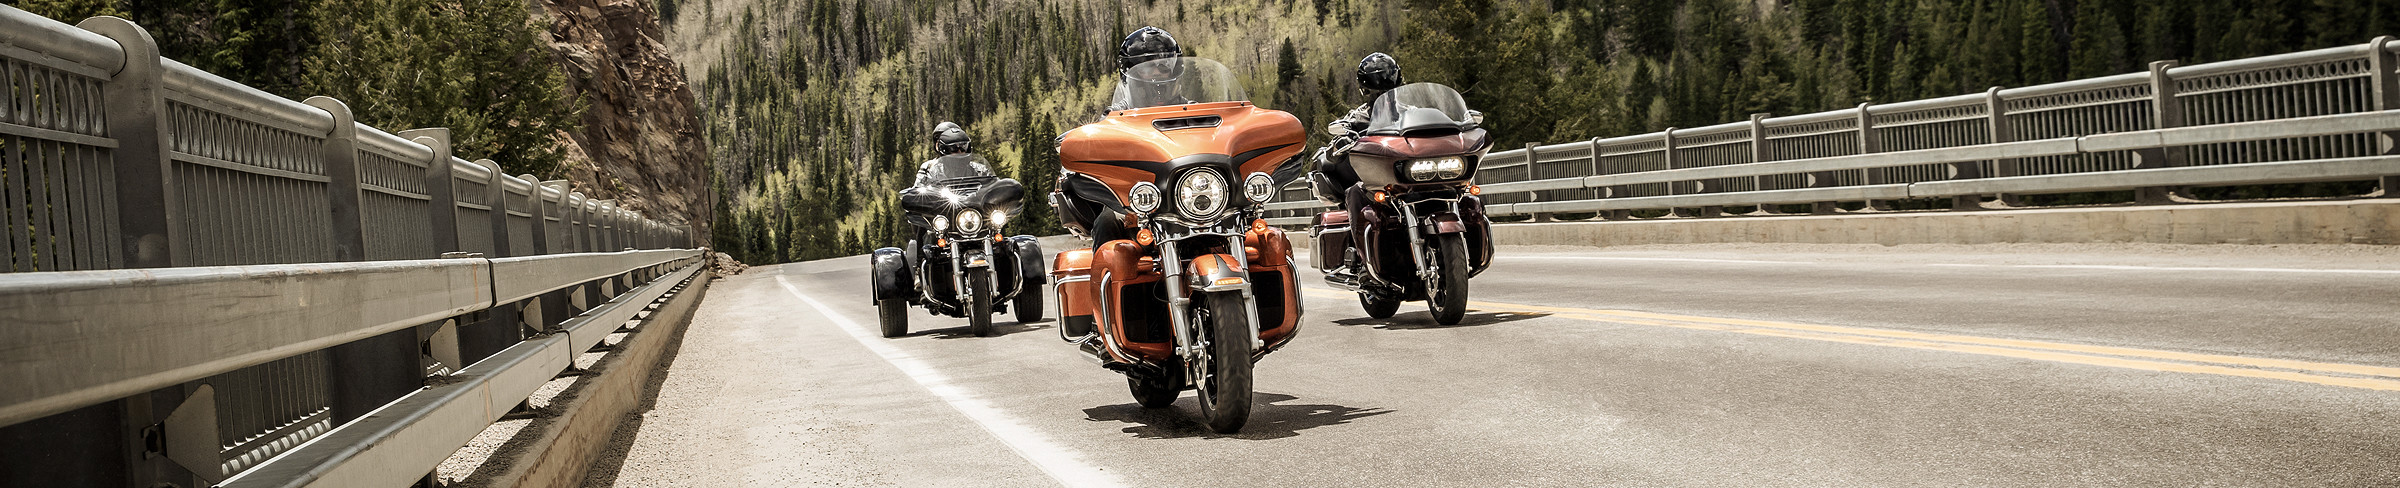 New Harley-Davidson Trike Tri Glide Motorcycles for sale near Mansfield, Ohio